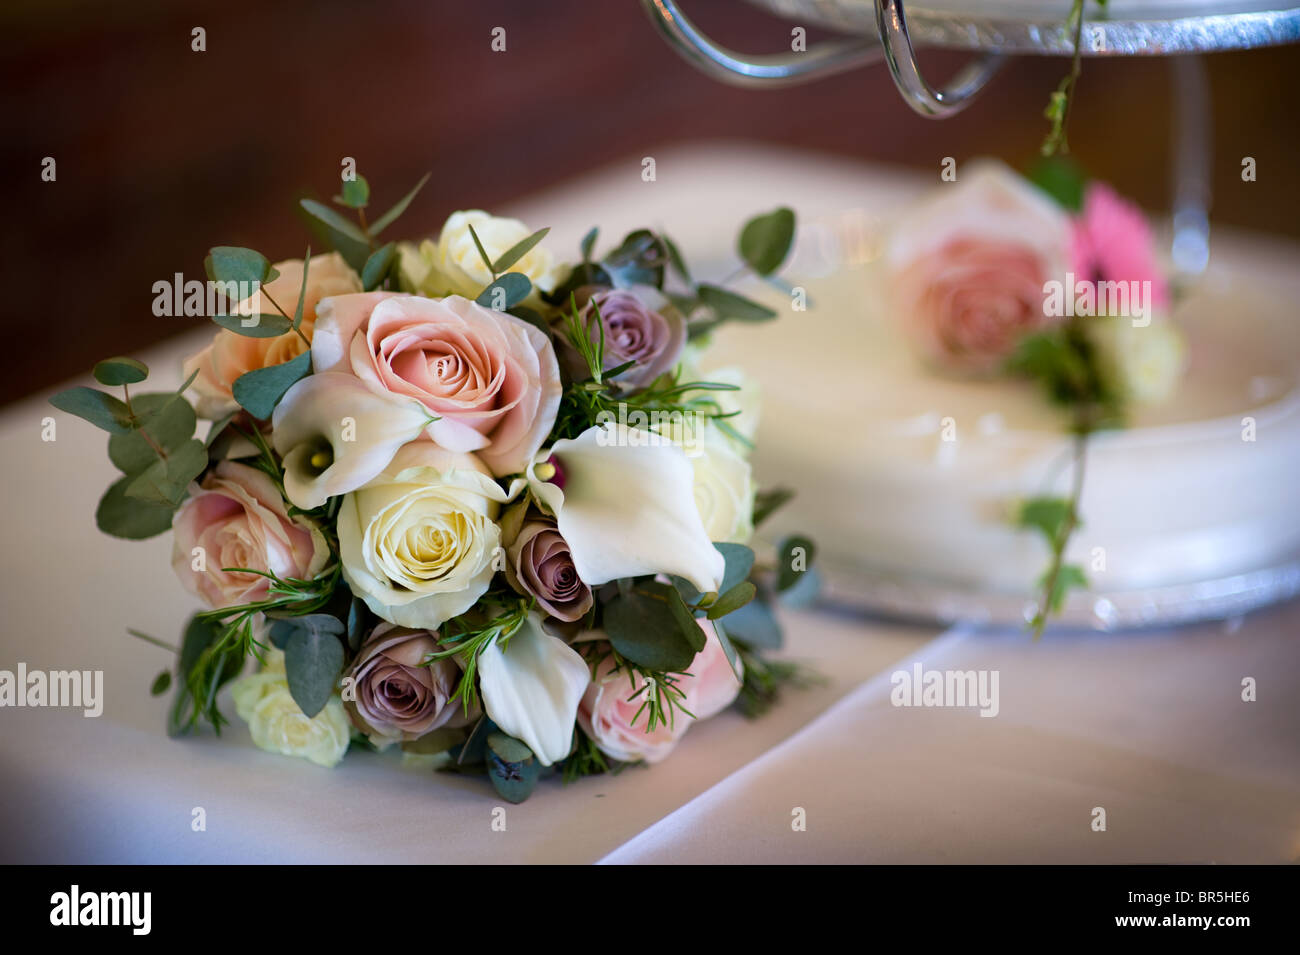 Wedding Bouquet Of Roses And Lilies On A Table Beside A Wedding Cake Stock Photo Alamy